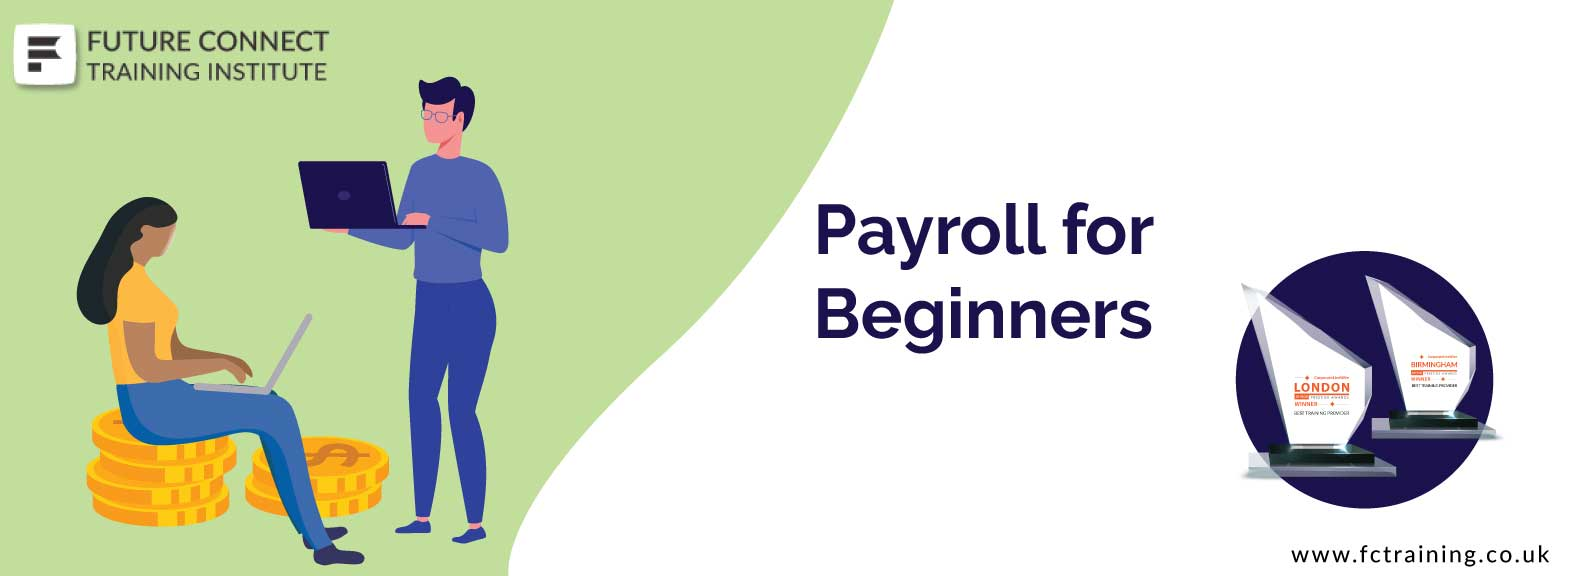 Payroll for Beginners